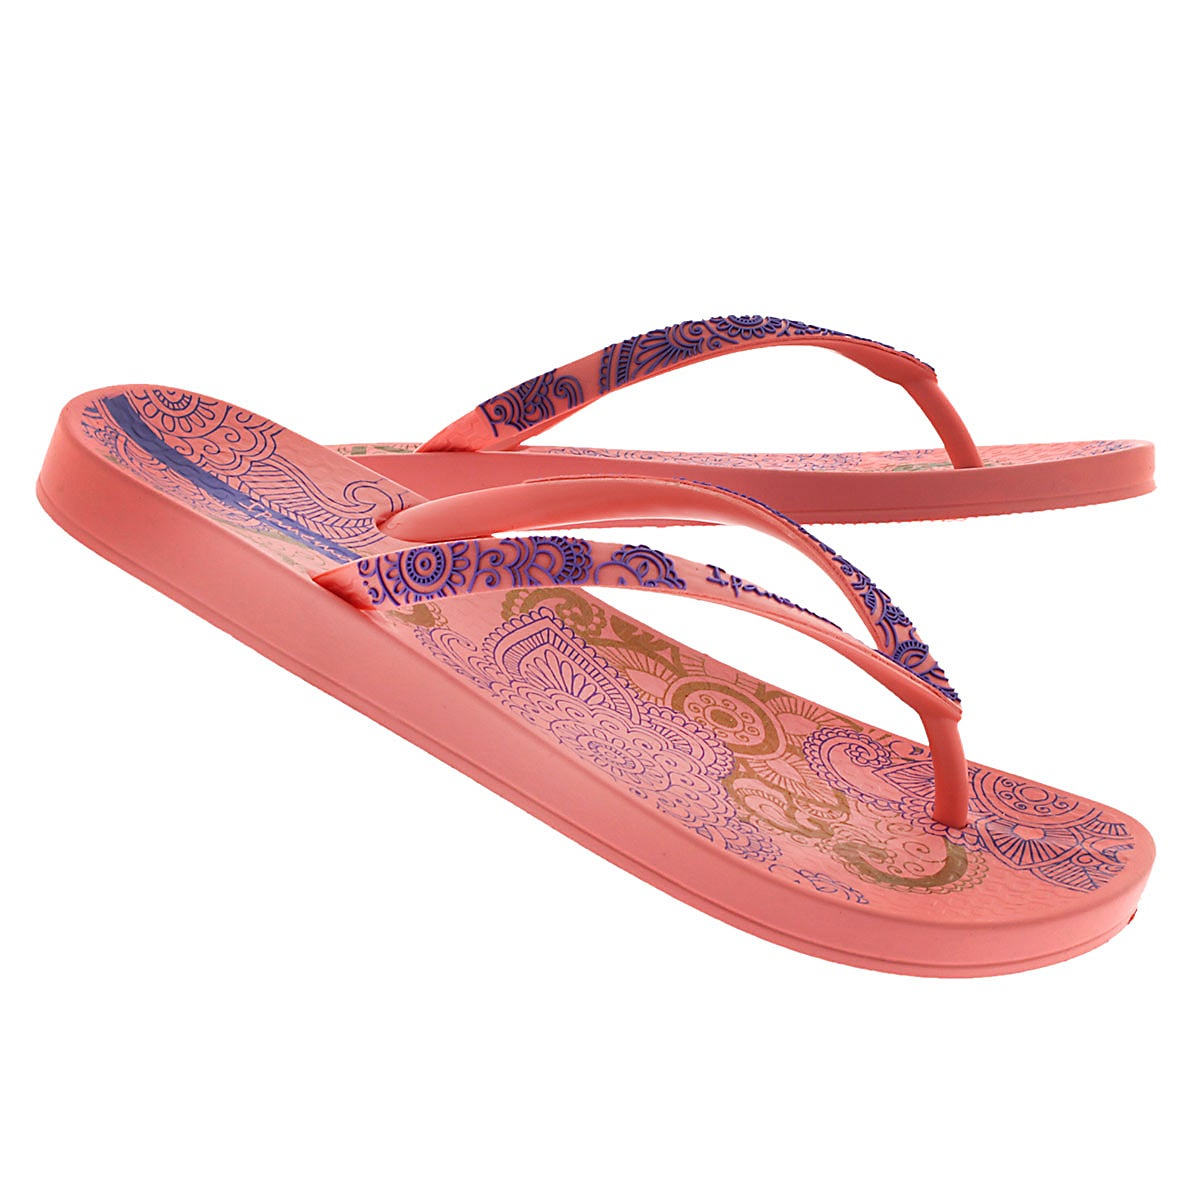 Lds Lace pink/purple printed flip flop